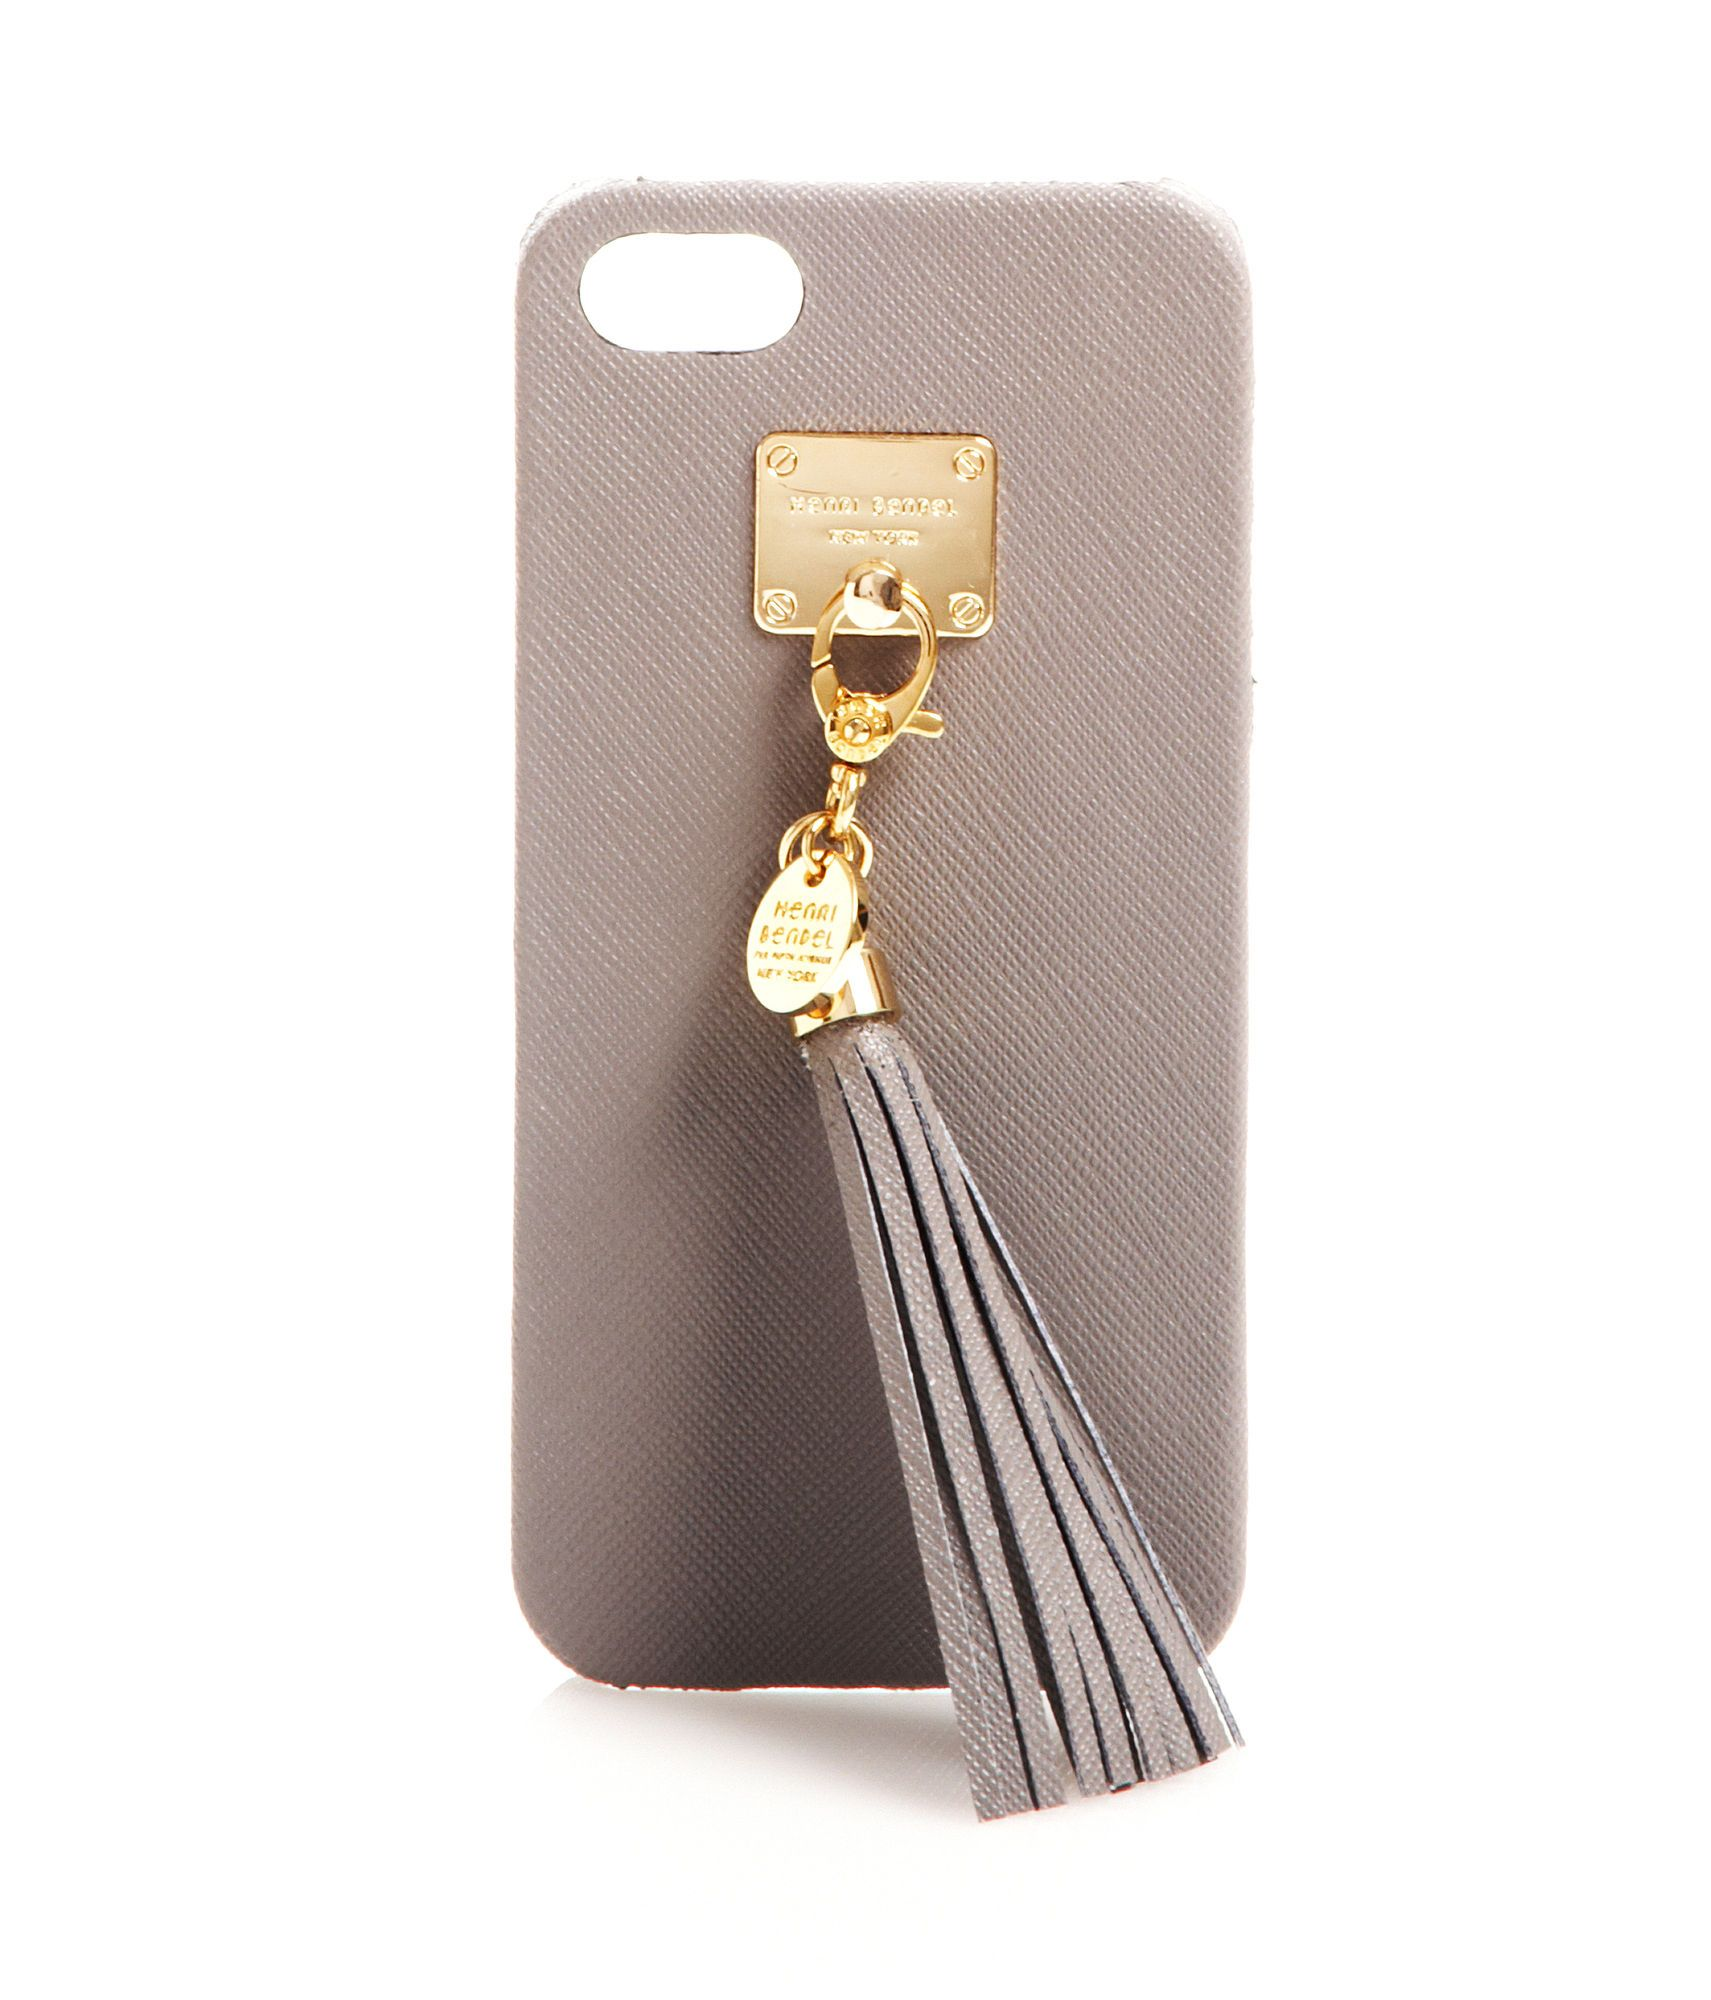 west 57th tassel cover for iphone 5 5s scarves \u0026 printsbest sellers most popular products designer phone casesiphone